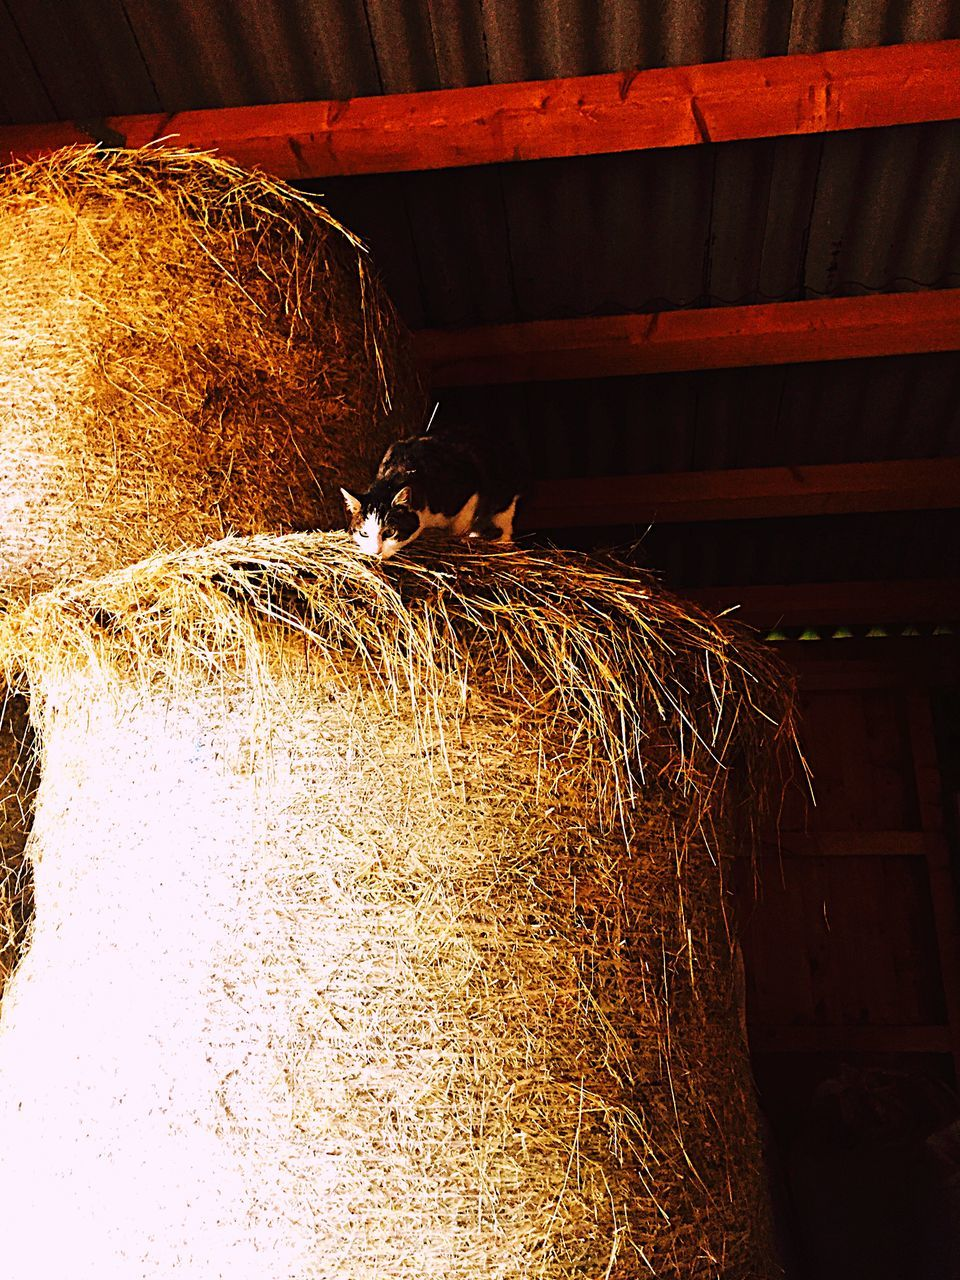 hay, straw, bale, haystack, no people, hay bale, stack, indoors, day, illuminated, close-up